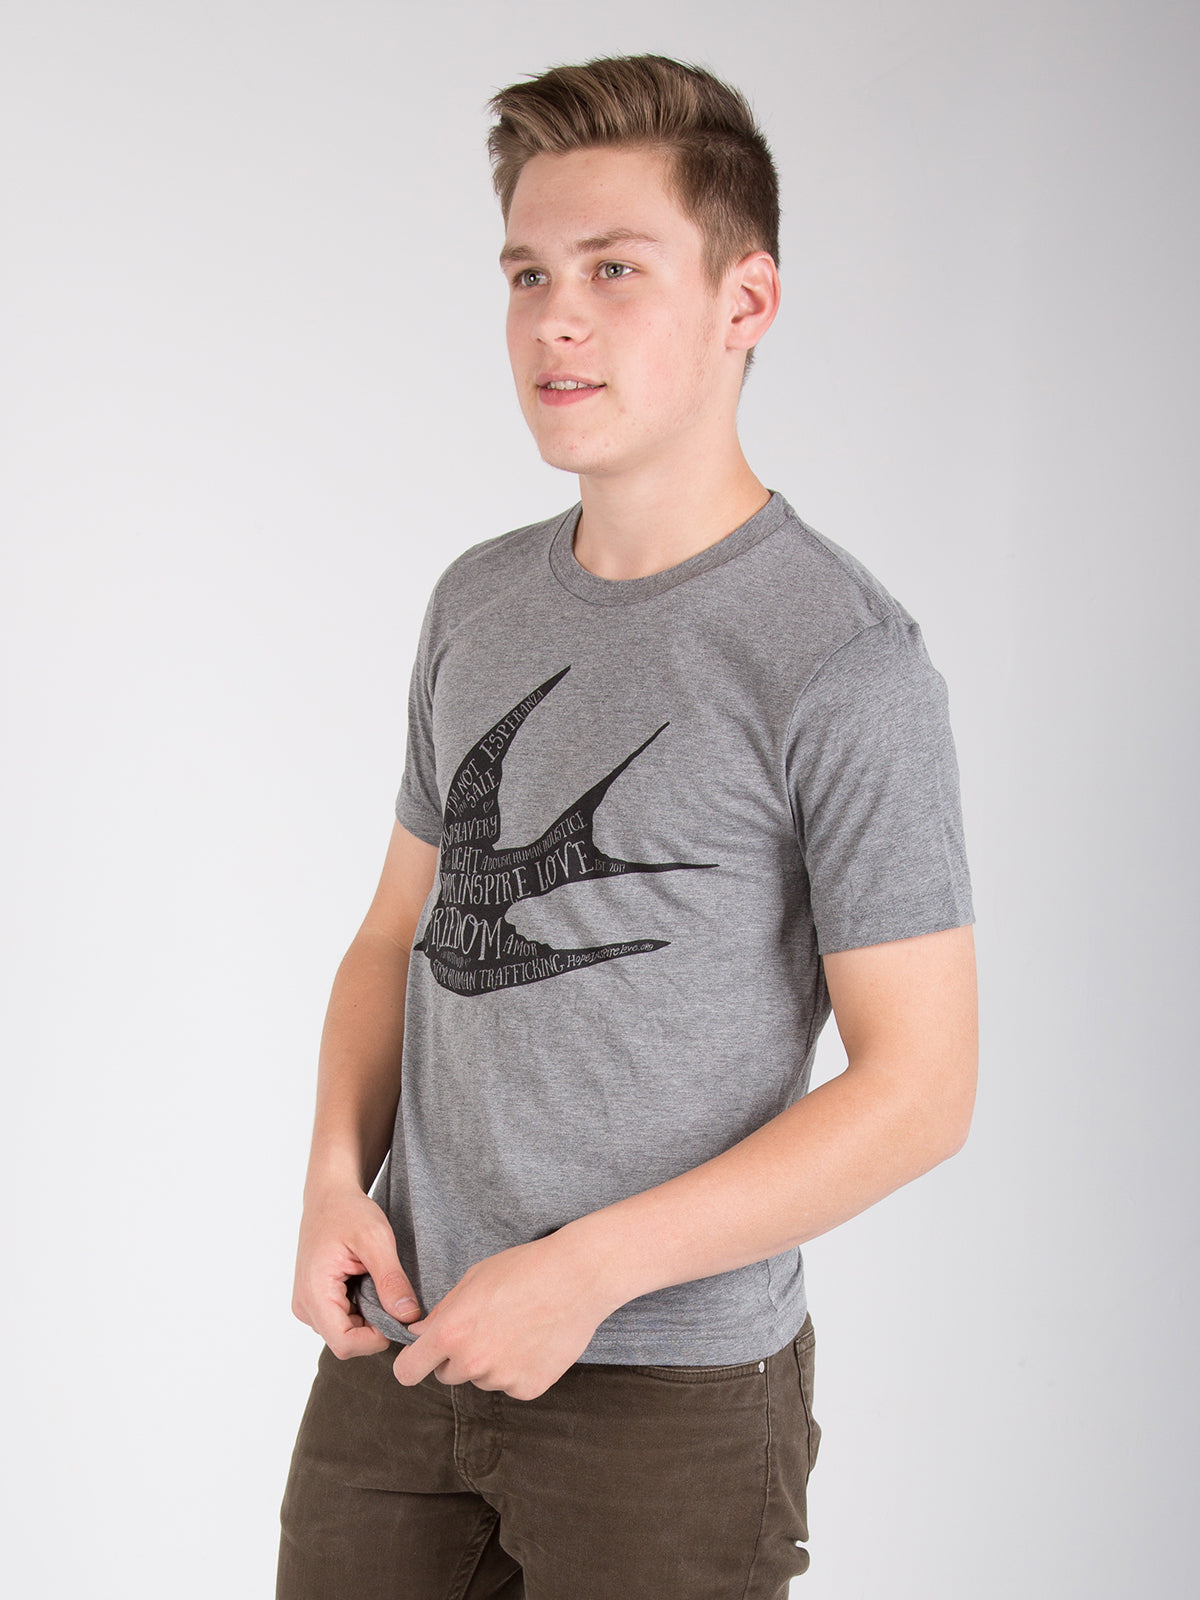 Freedom Sparrow - Grey Short Sleeve T-Shirt - Unisex